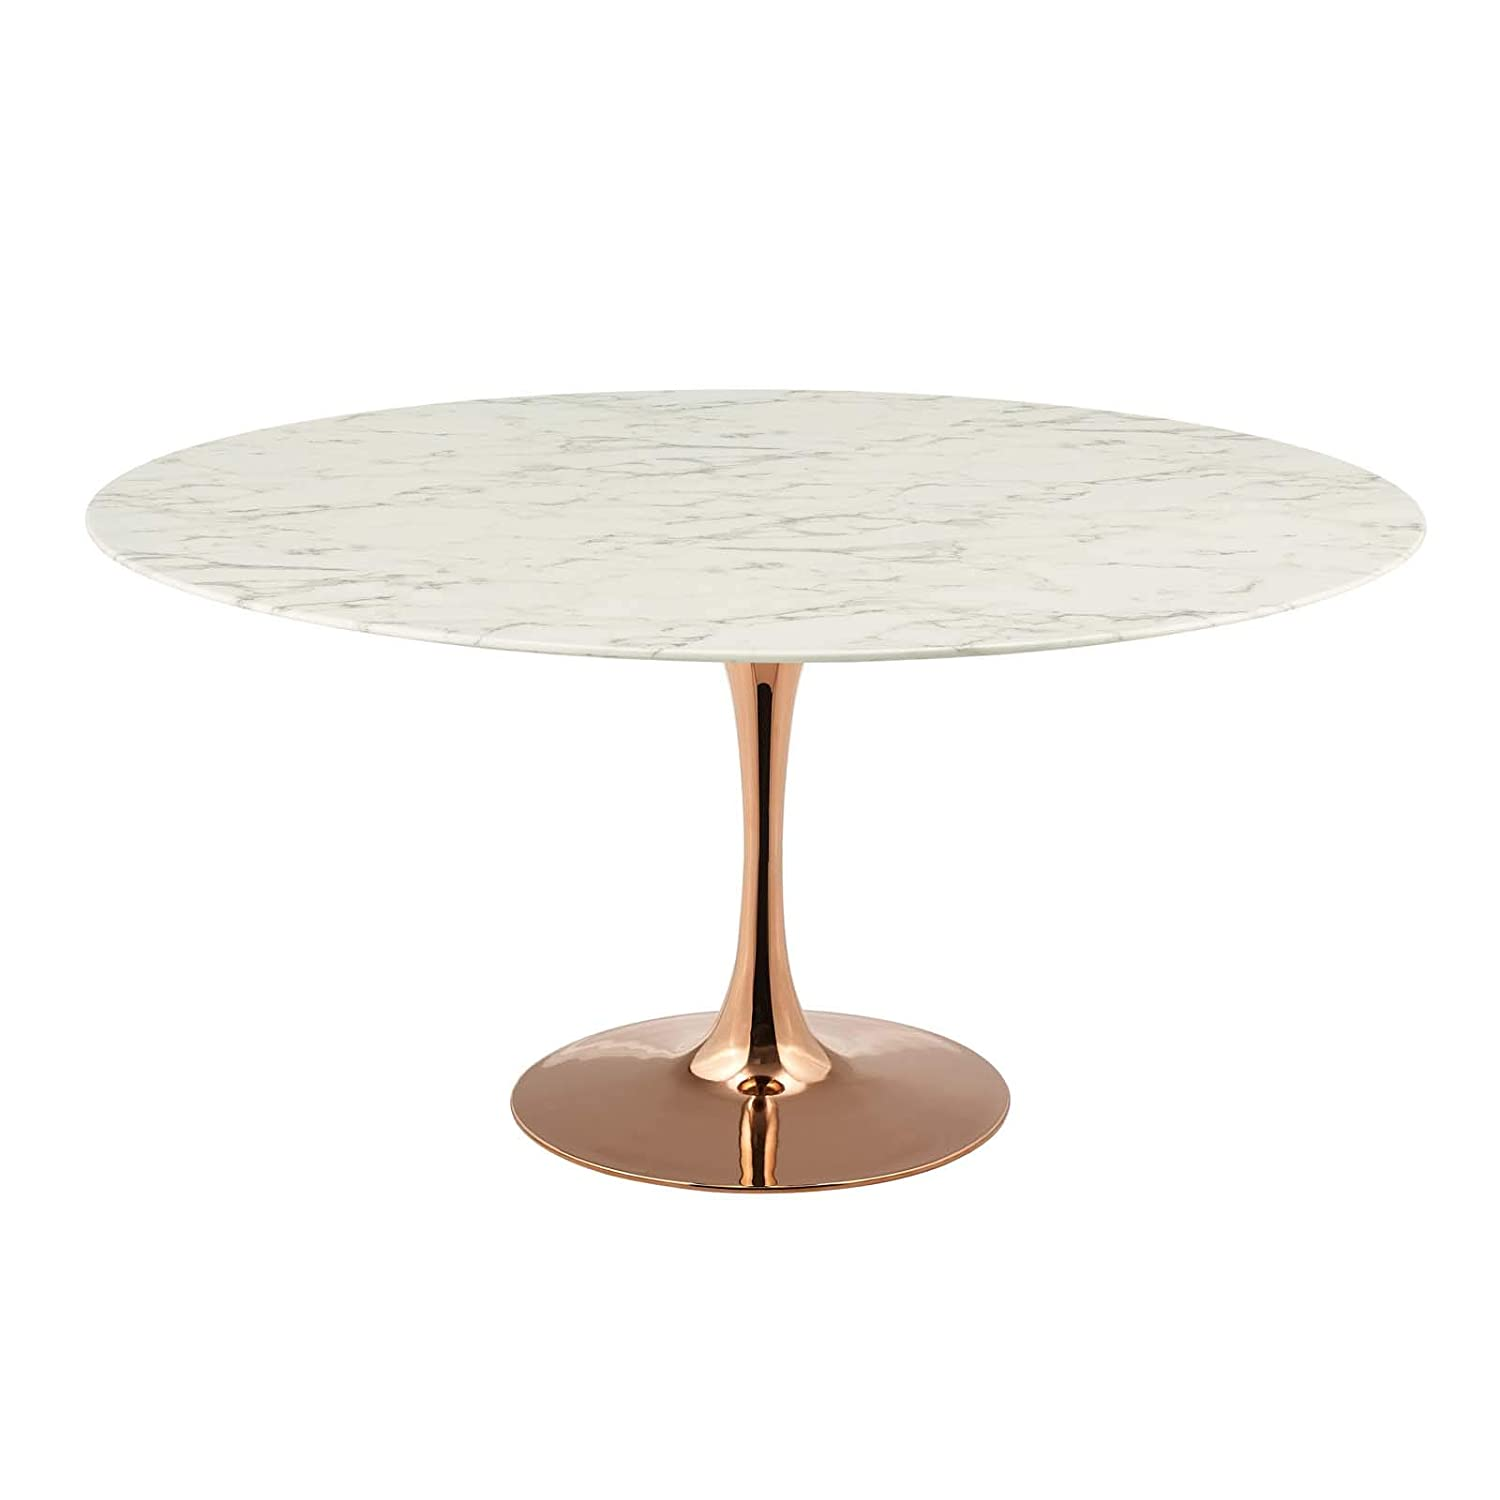 America Luxury - Tables Modern Deco Contemporary Kitchen Dining Dining Table, Metal Steel Artificial Marble, White Rose Gold